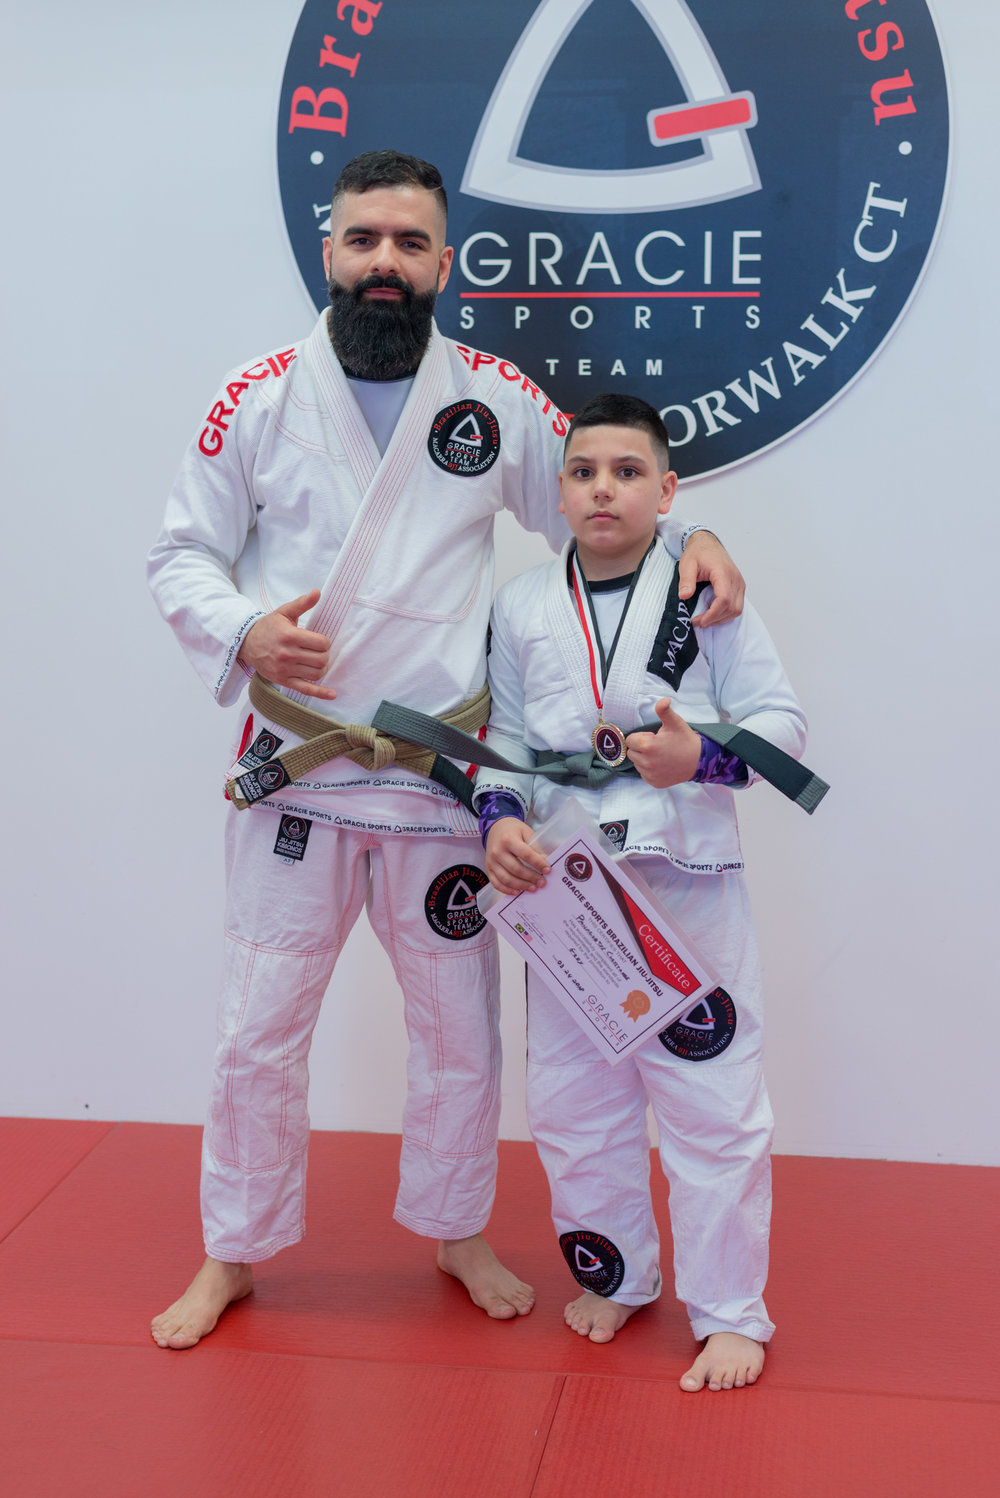 Gracie-Sports-Kids-166.jpg